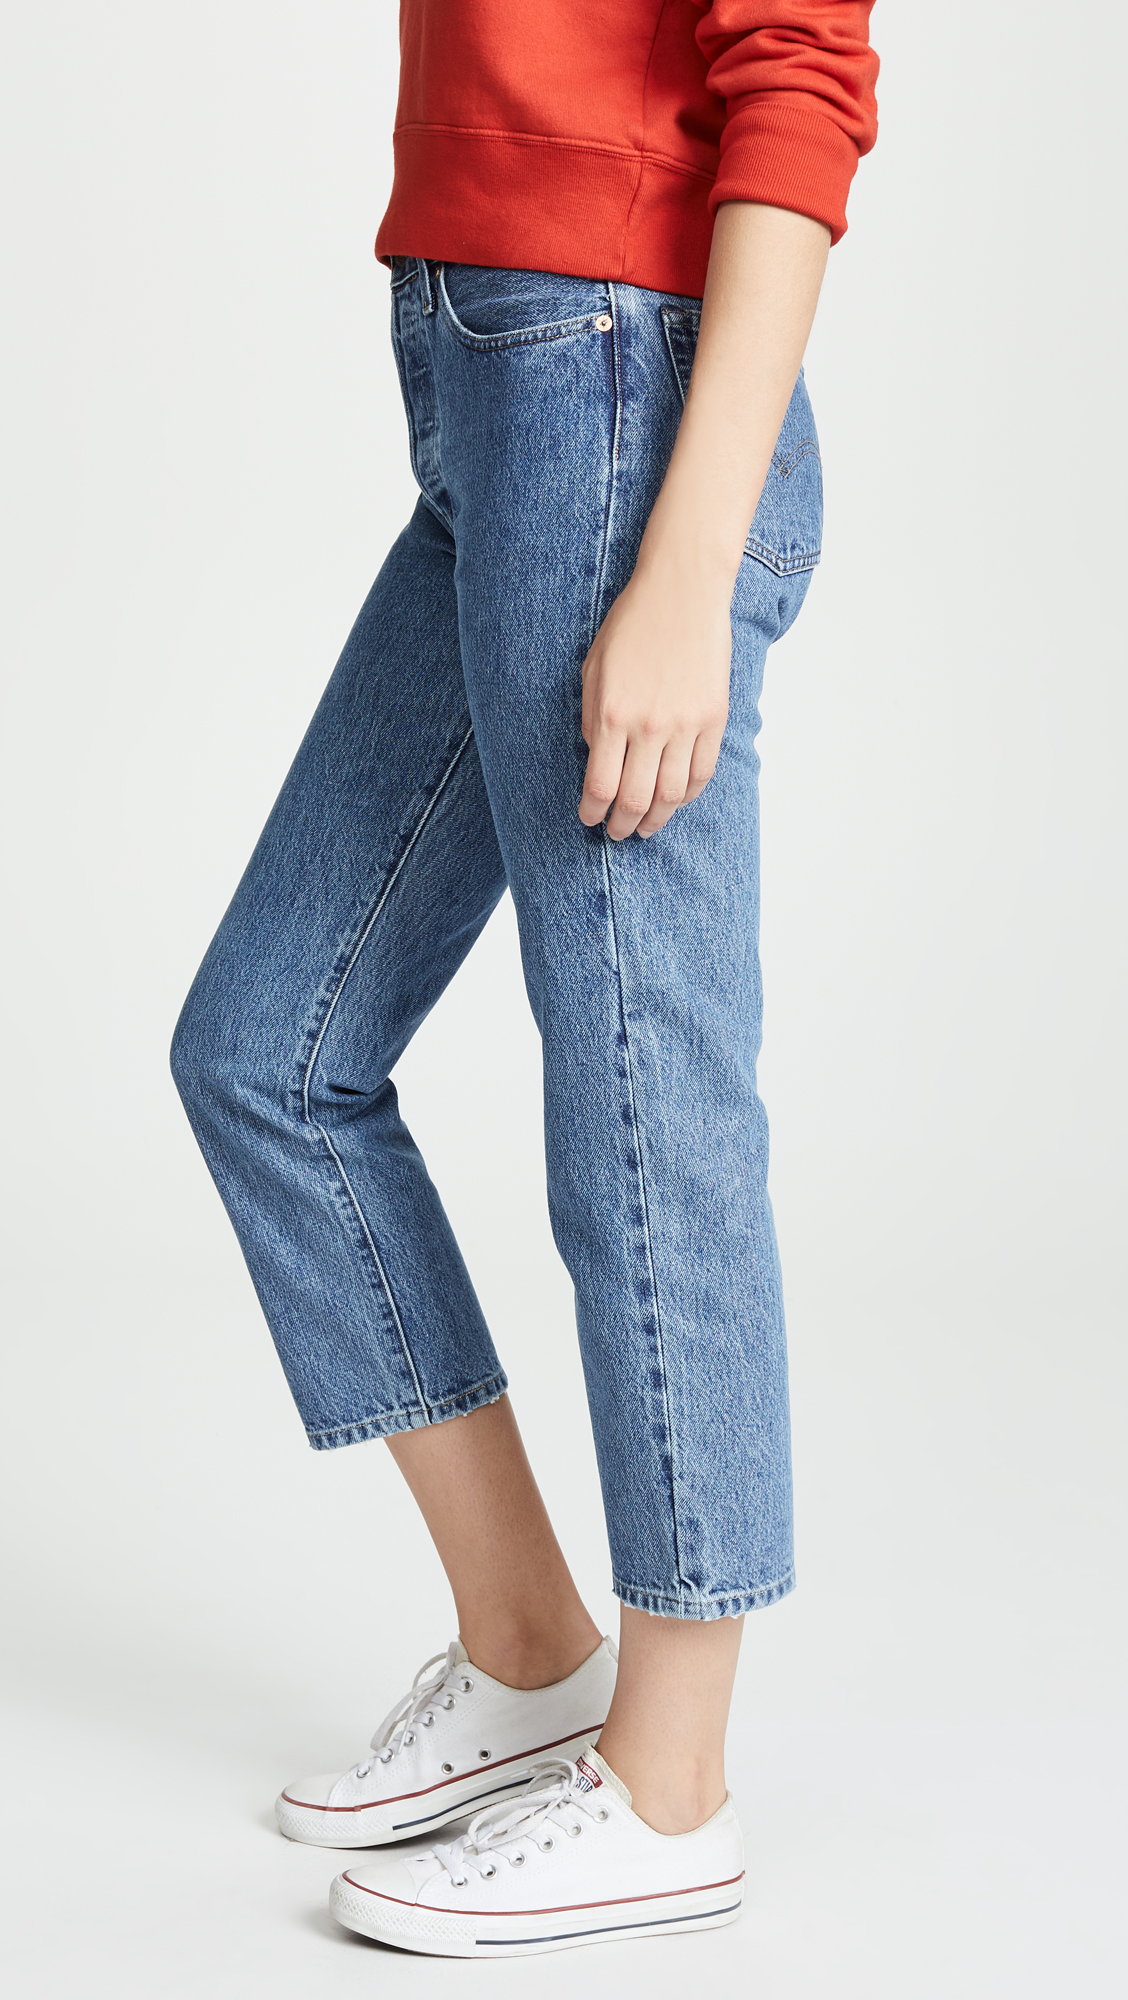 579a9532eb Levi s Made   Crafted 501 Crop Jeans